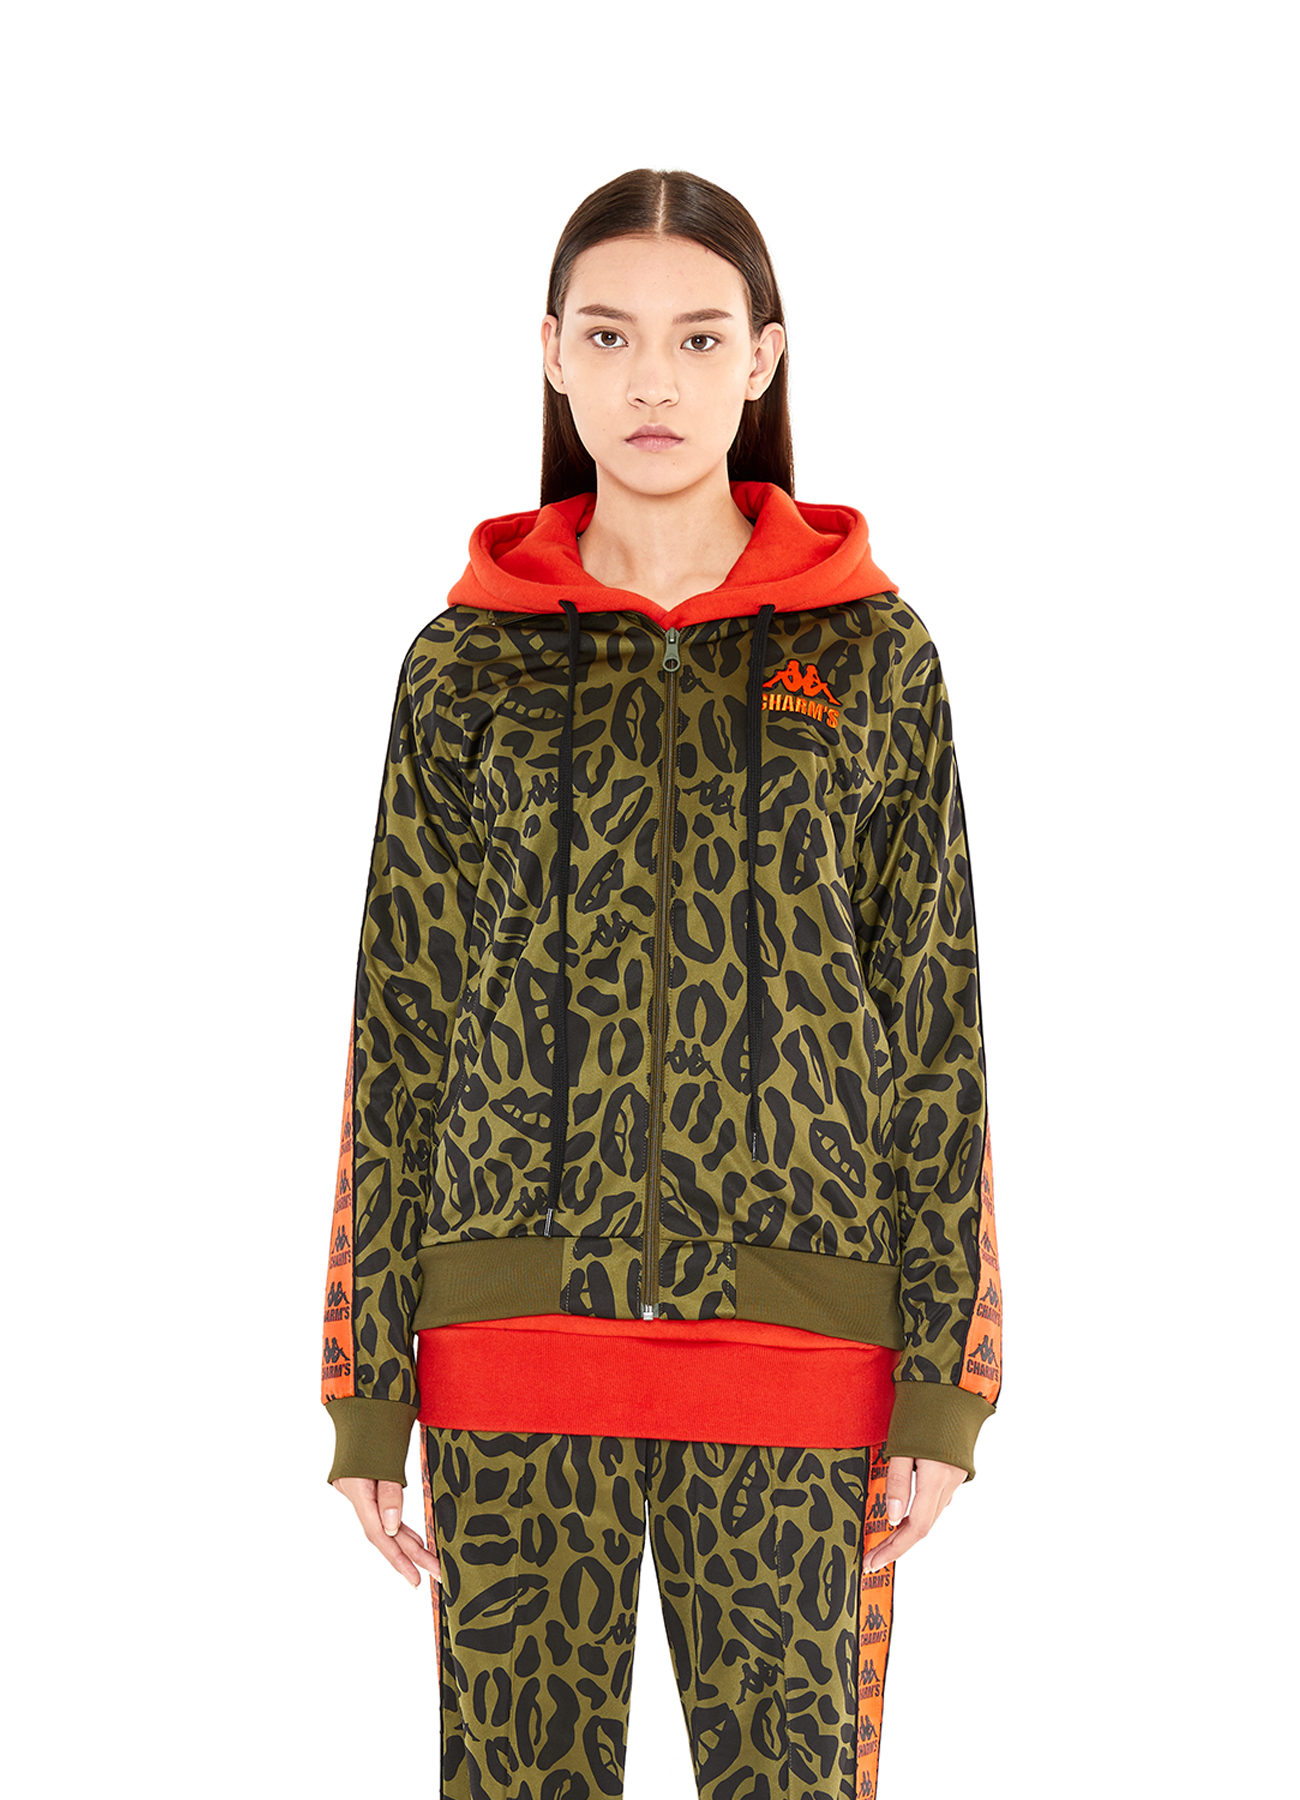 X Kappa Lip&Leopard Patten Training Jacket